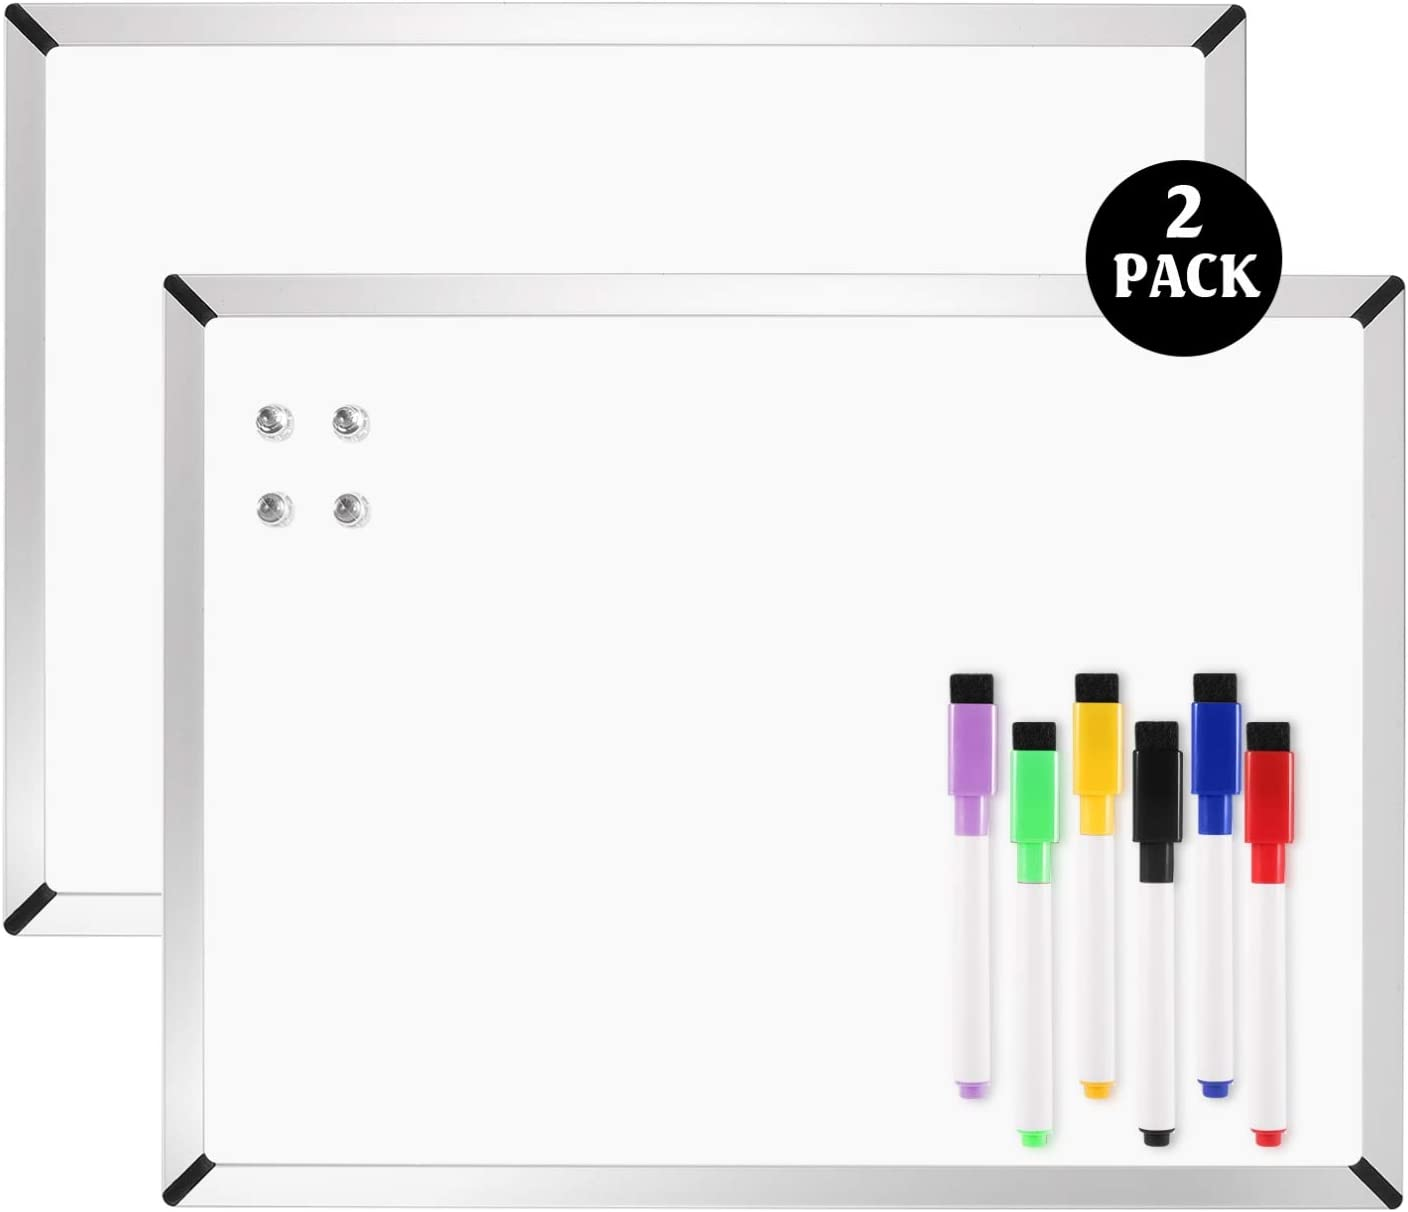 "Dry Erase Board 11""x 14"", 2-Pack Small Magnetic White Board, Includes 6 Dry Erase Markers, 4 Magnets and 8 Reusable Double-Sided Tapes. Great for Kids, Home, Office, Refrigerator, Locker"